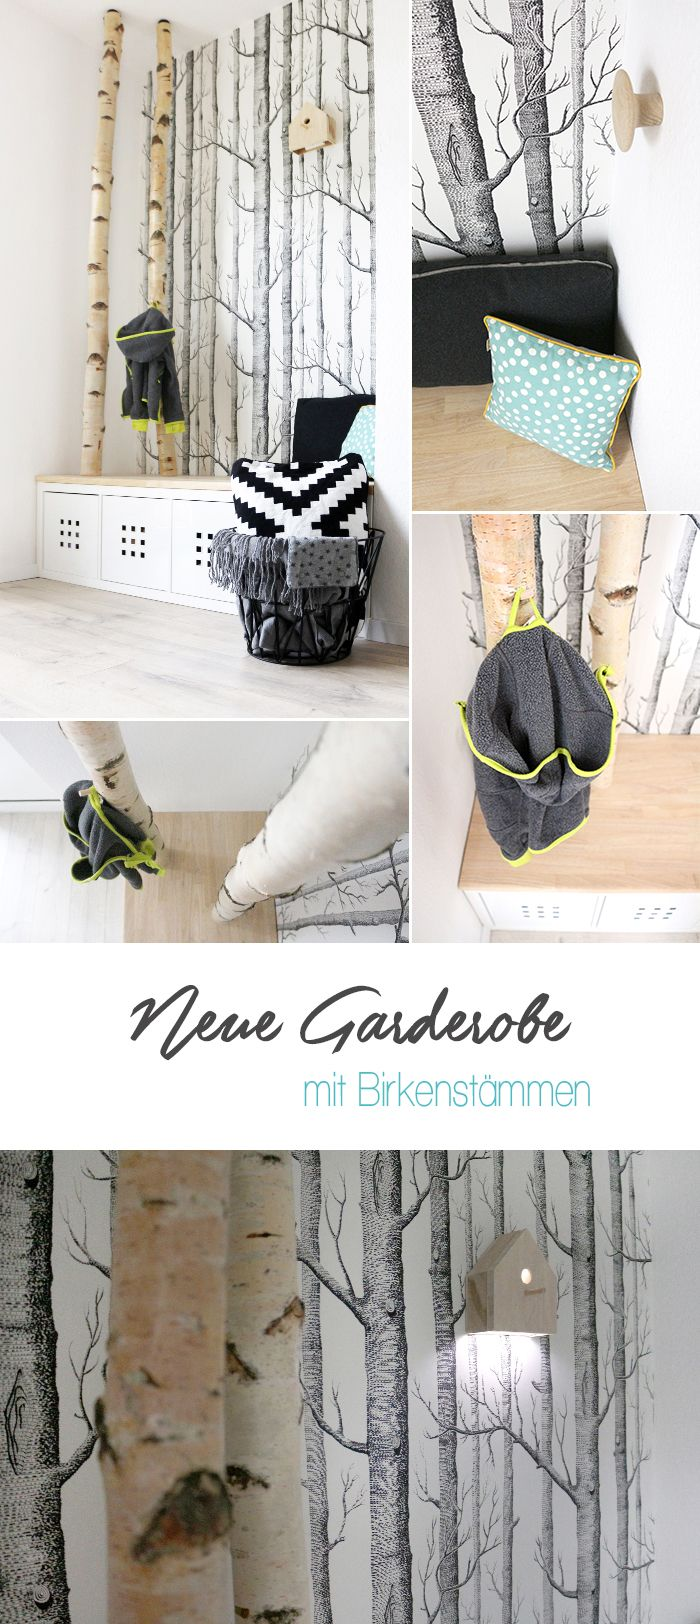 25 best ideas about selbermachen garderobe on pinterest Garderobe birke